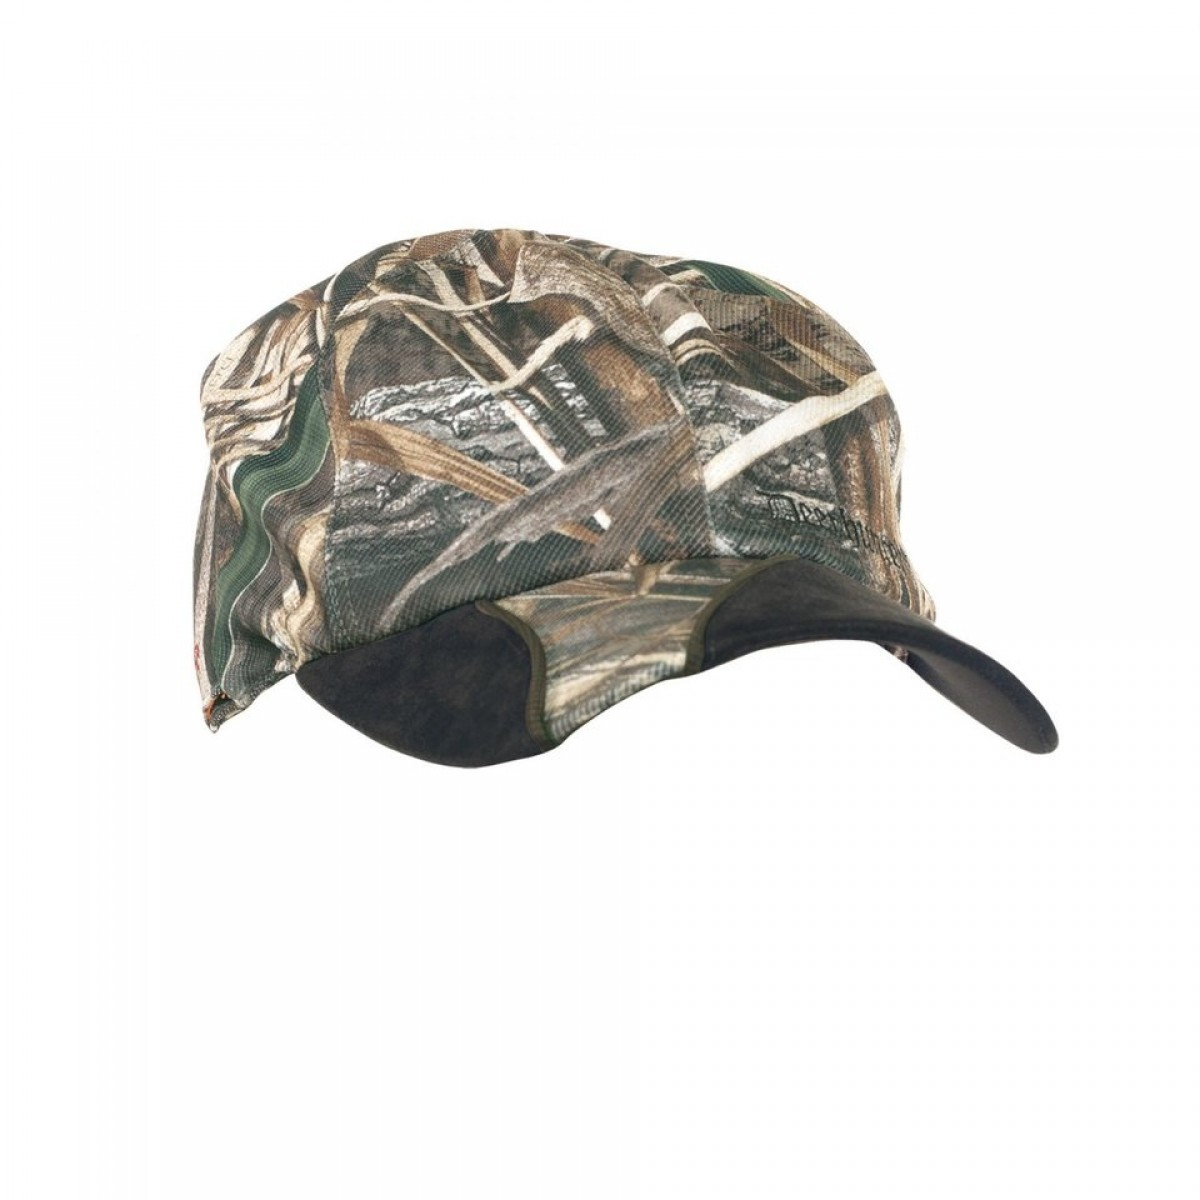 Realtree Max-5 Camouflage